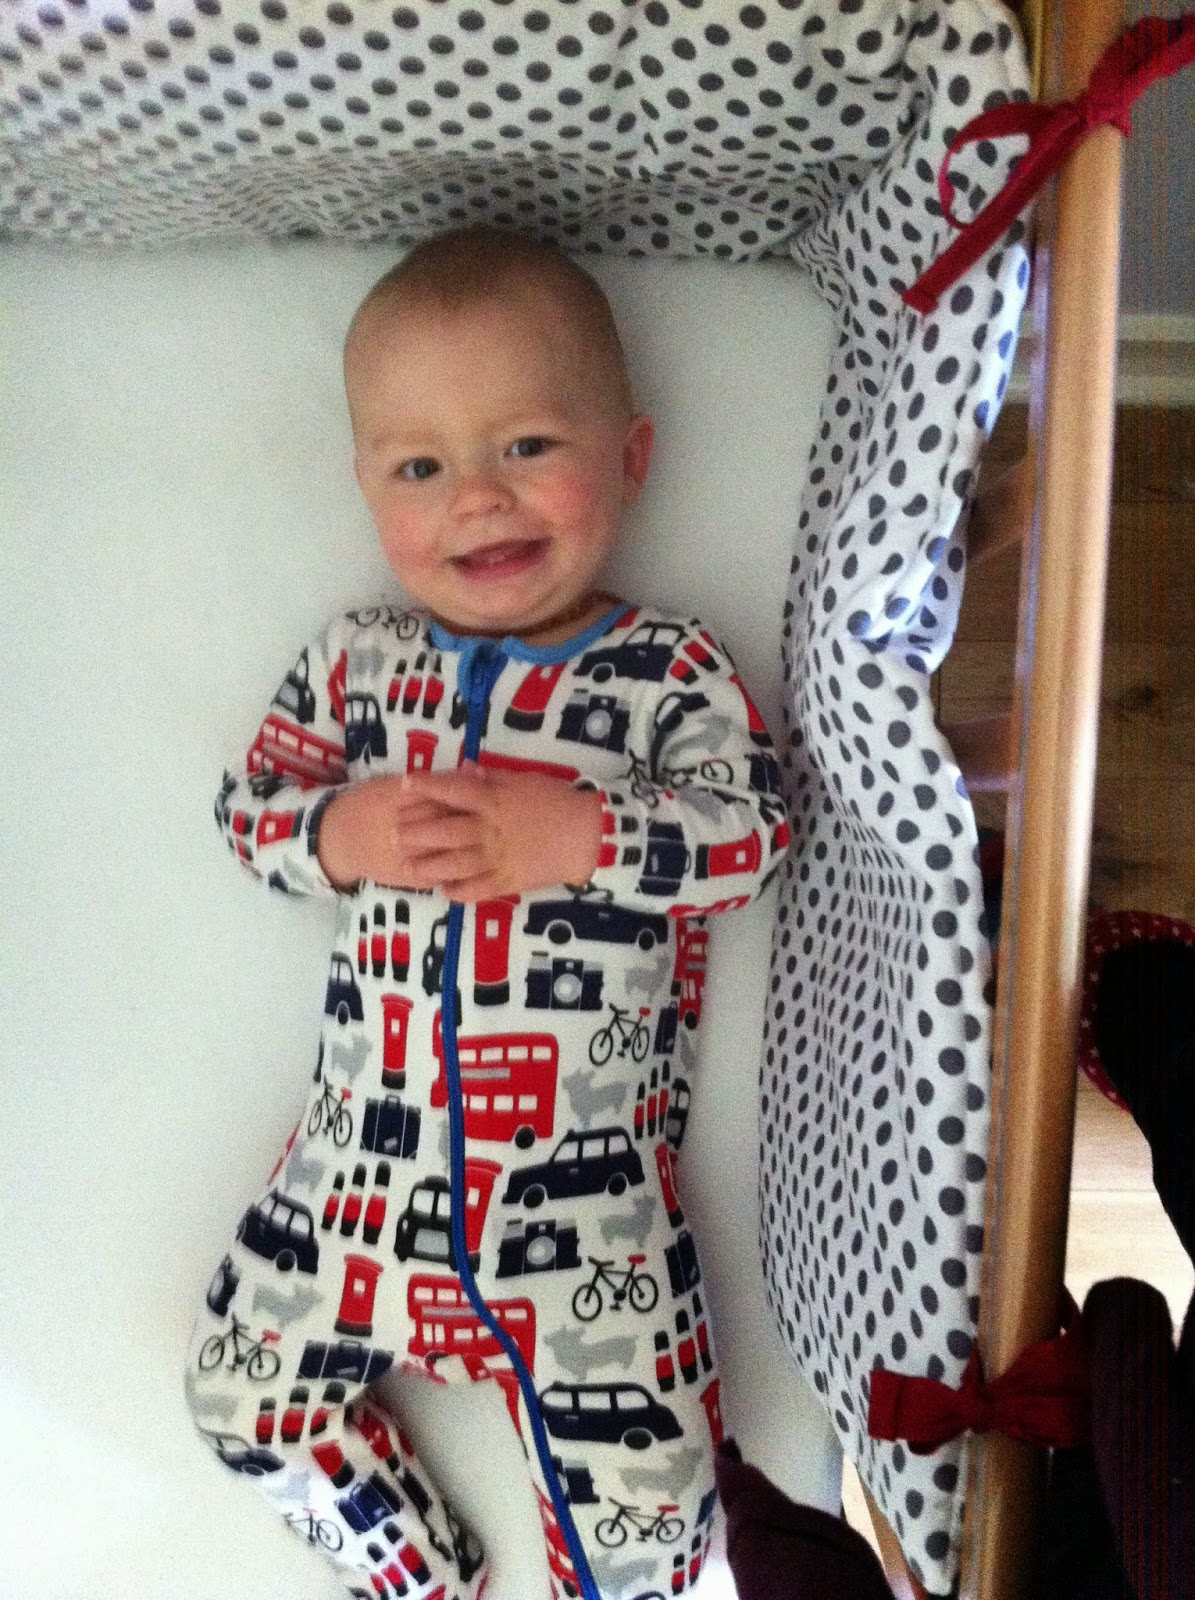 Finley in cot with handmade cot bumper